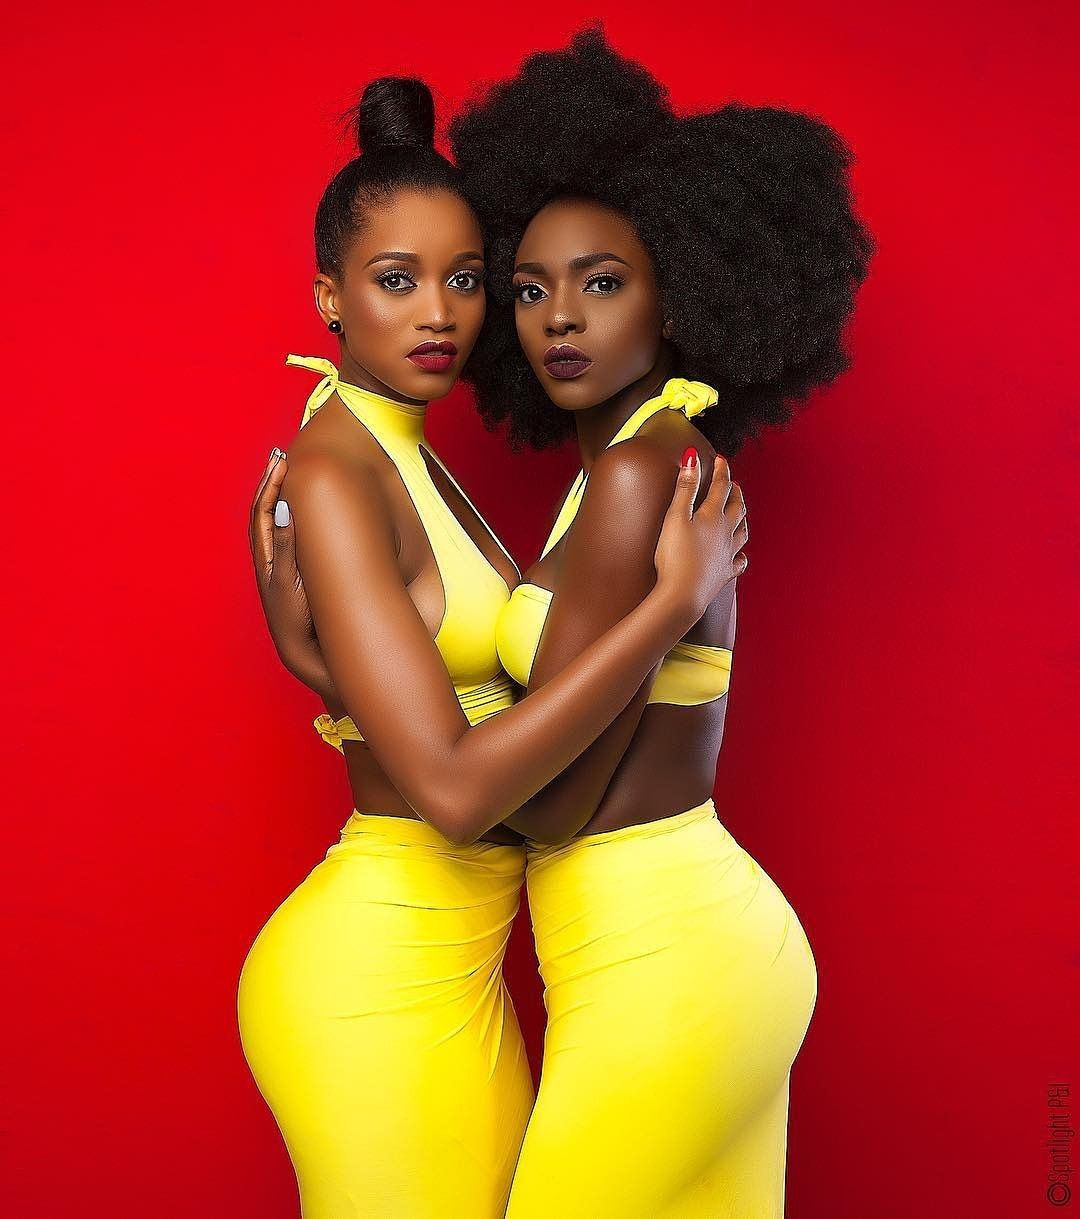 Image result for two black women in bed